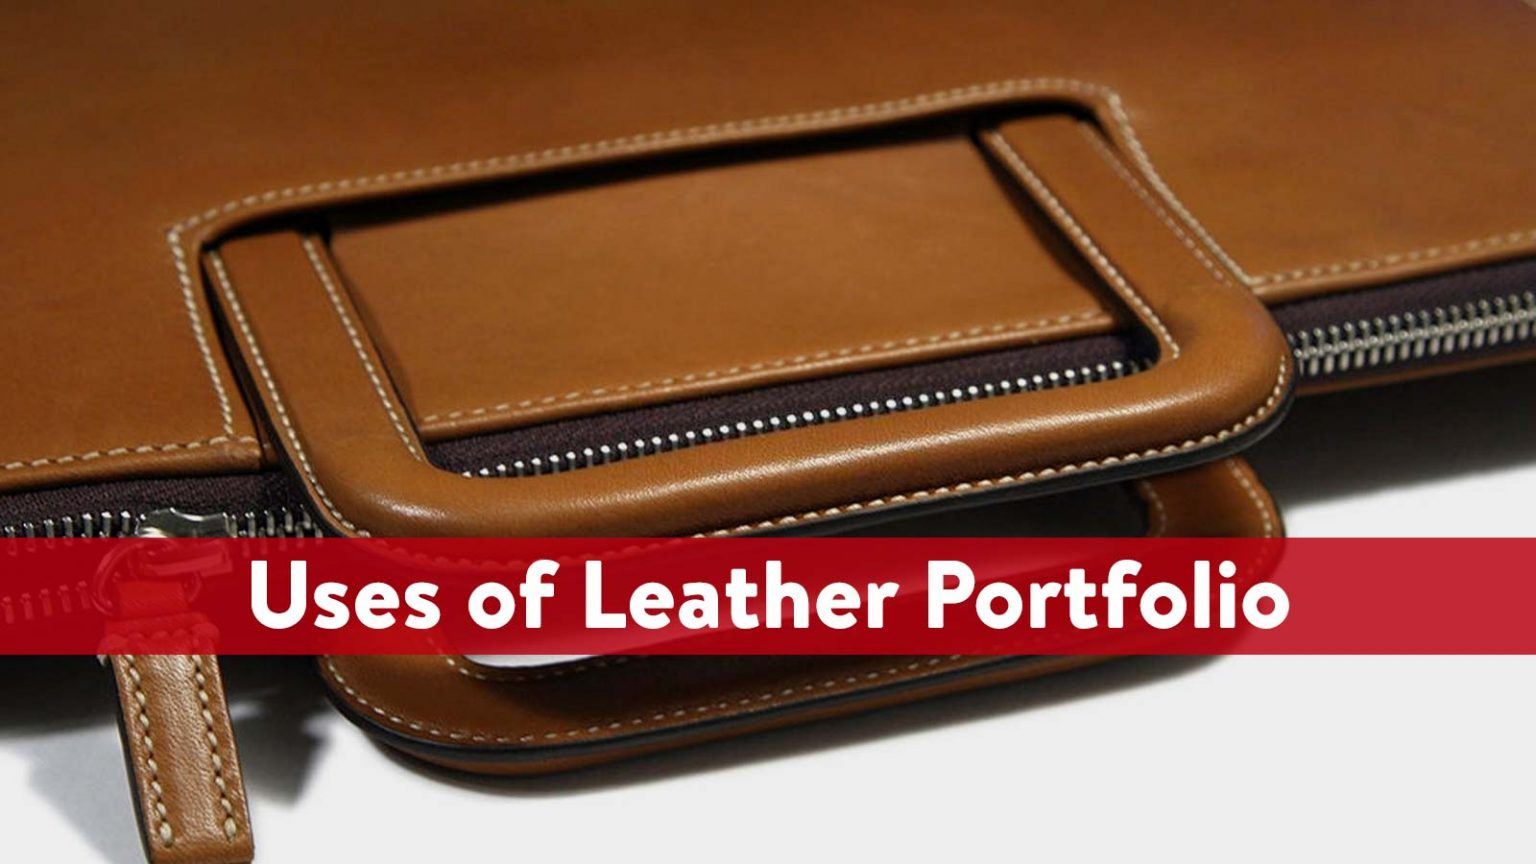 Uses of Leather Portfolio